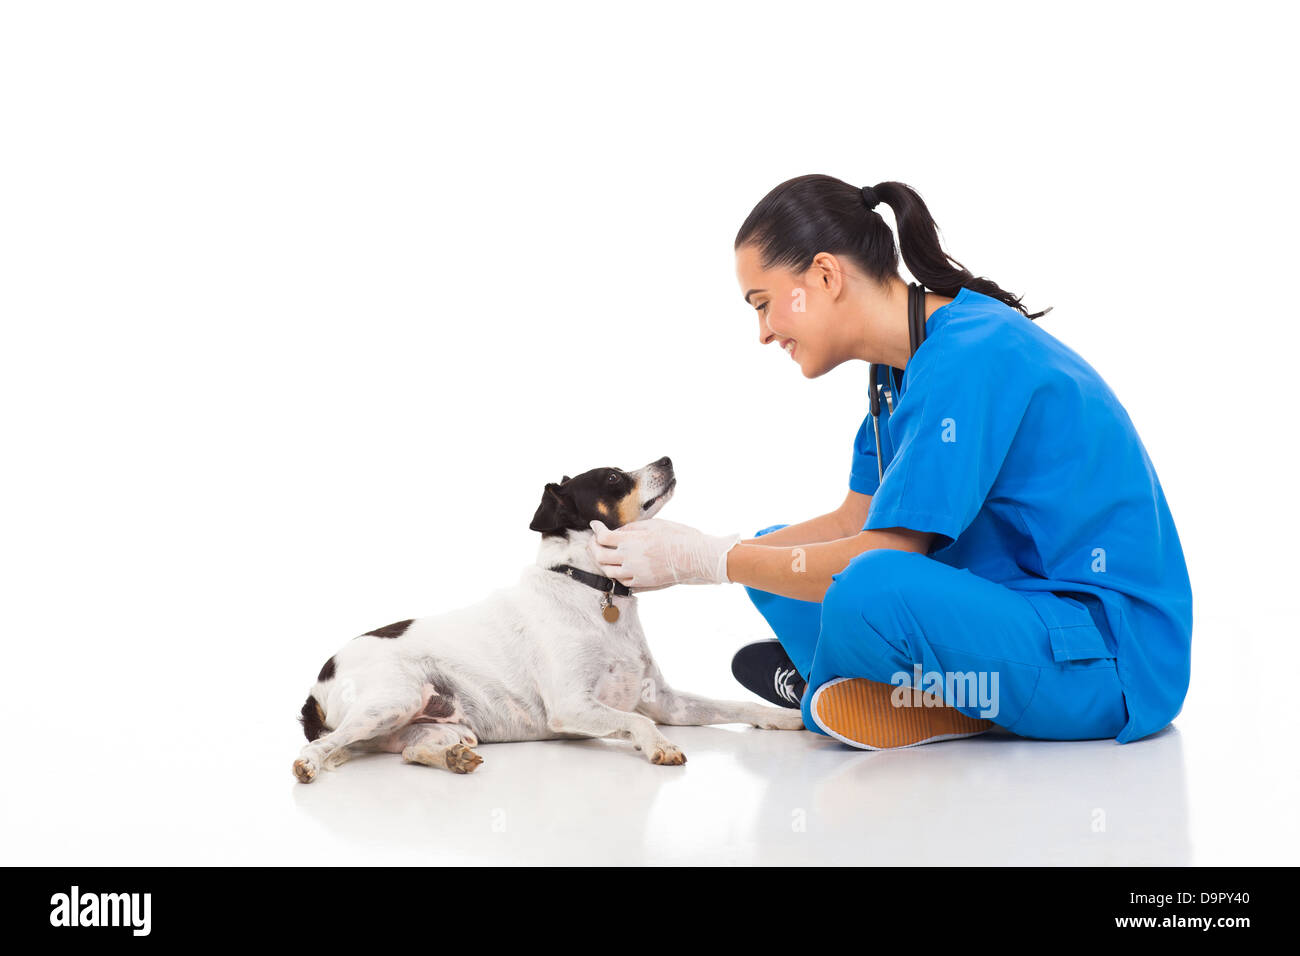 professional vet doctor playing with pet dog isolated on white - Stock Image